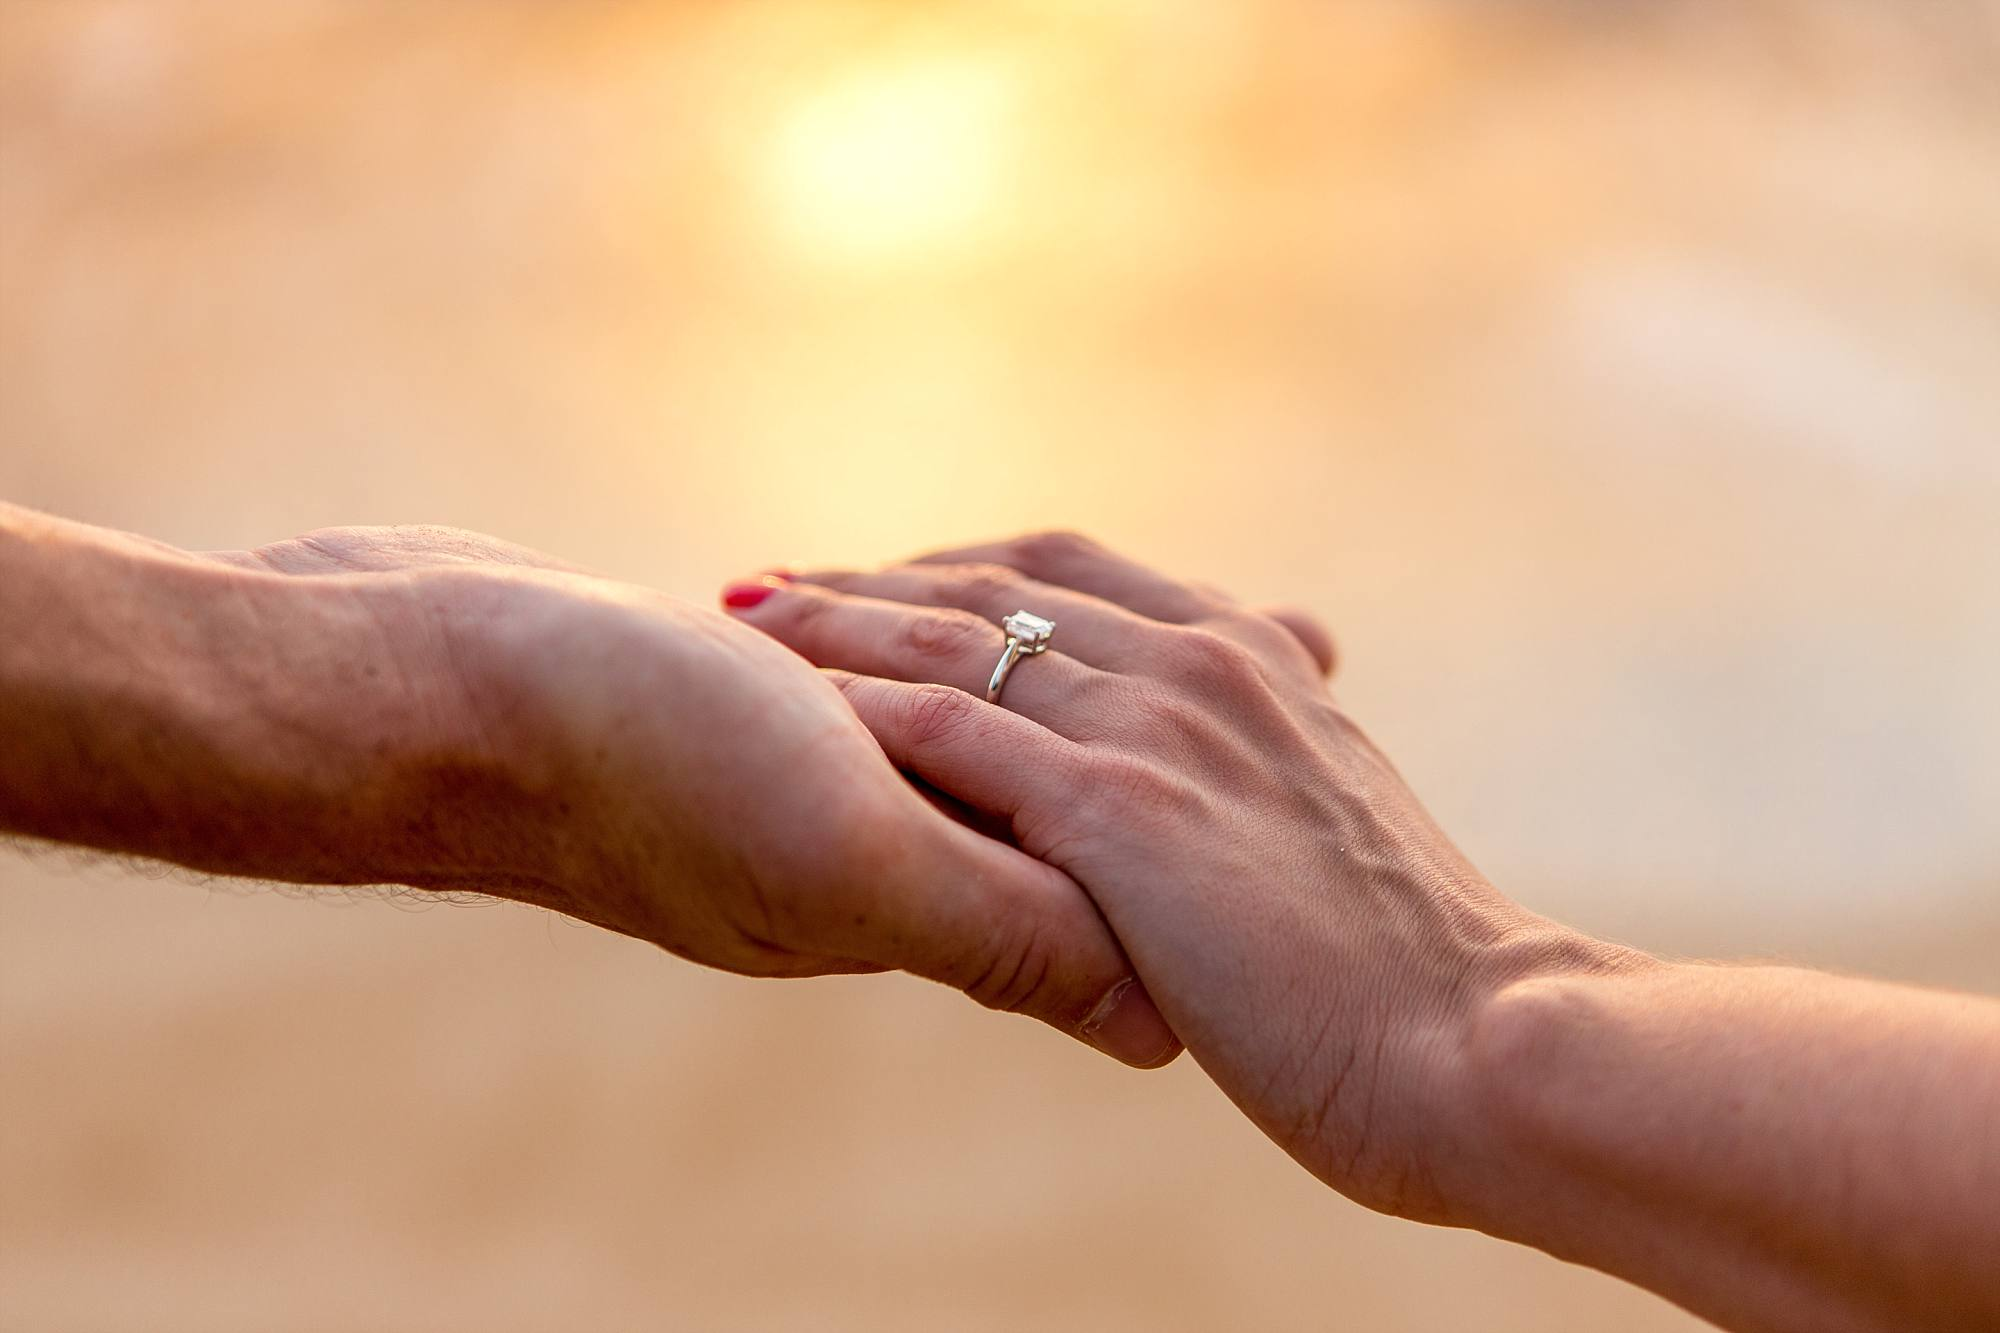 beautiful engagement ring on woman's hand, she's hand in hand with fiance